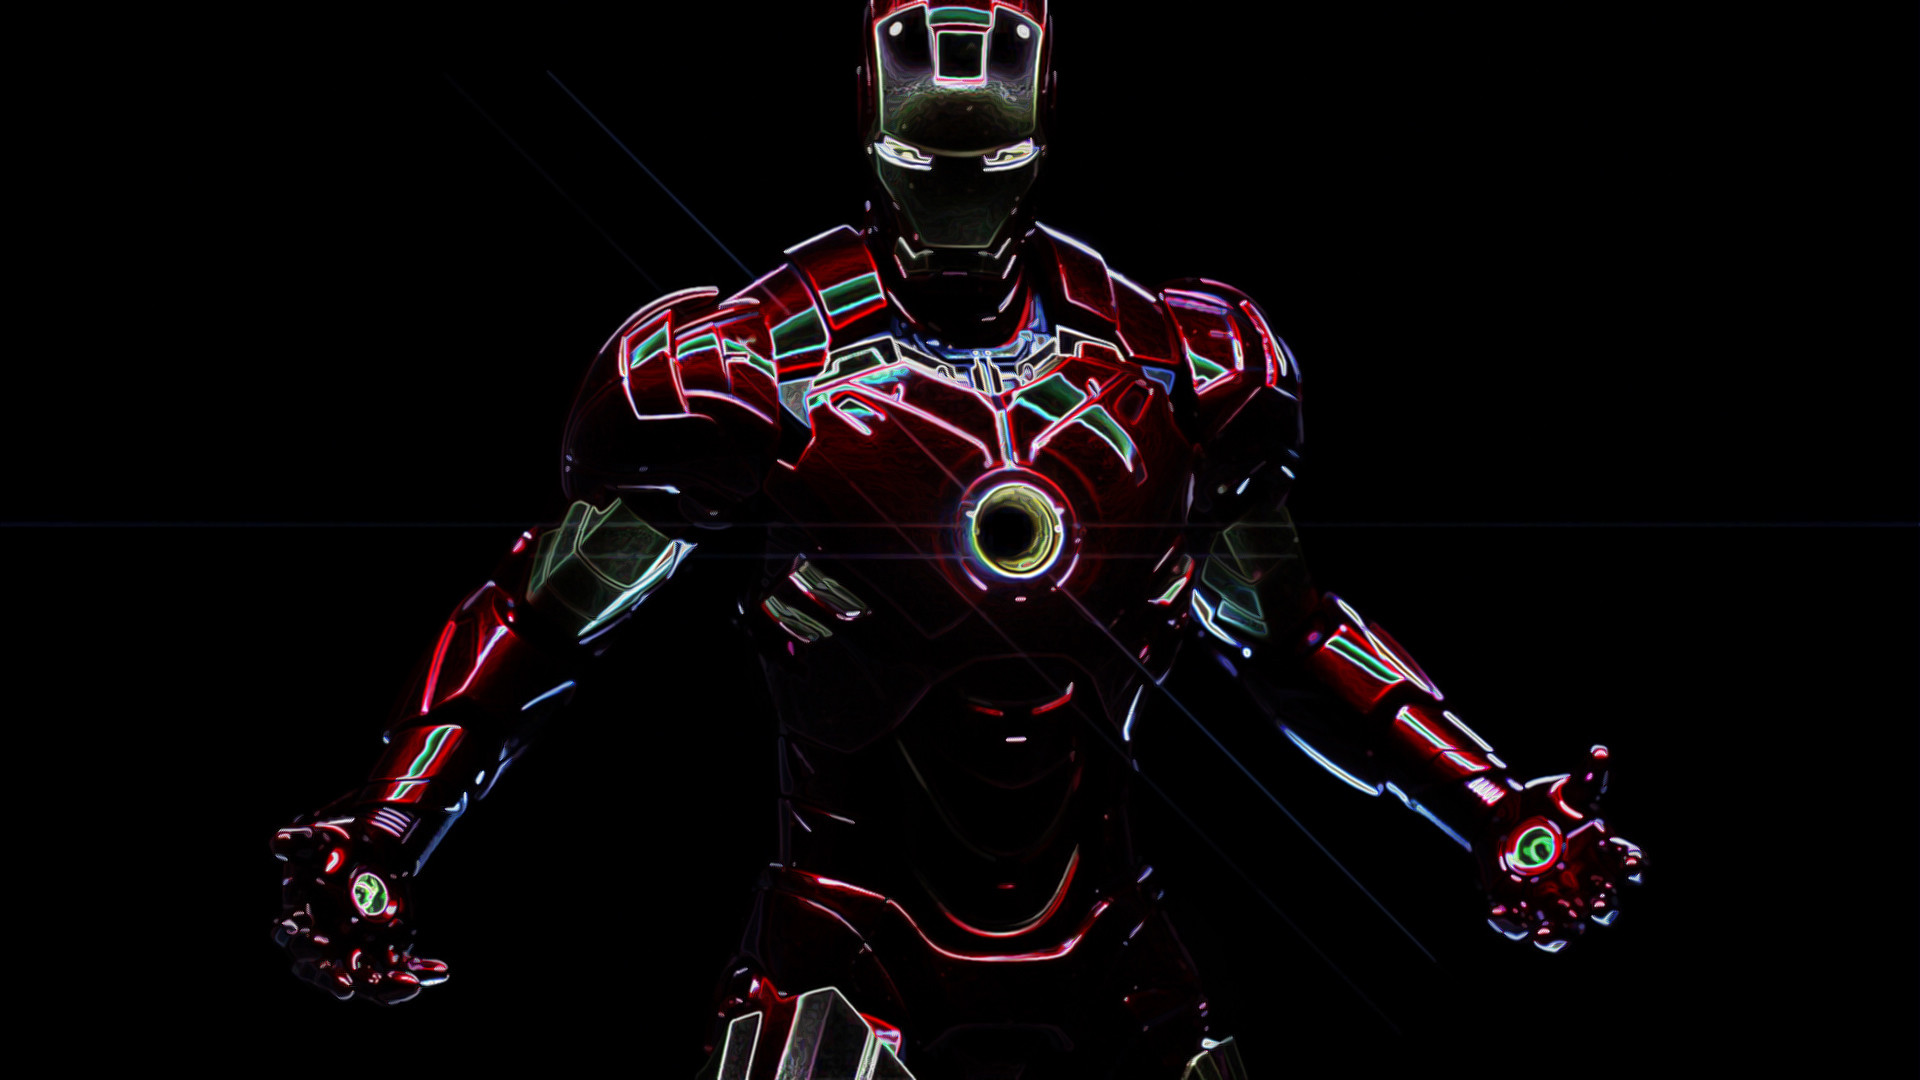 Iron Man Hd Wallpapers 1080p 72 Images